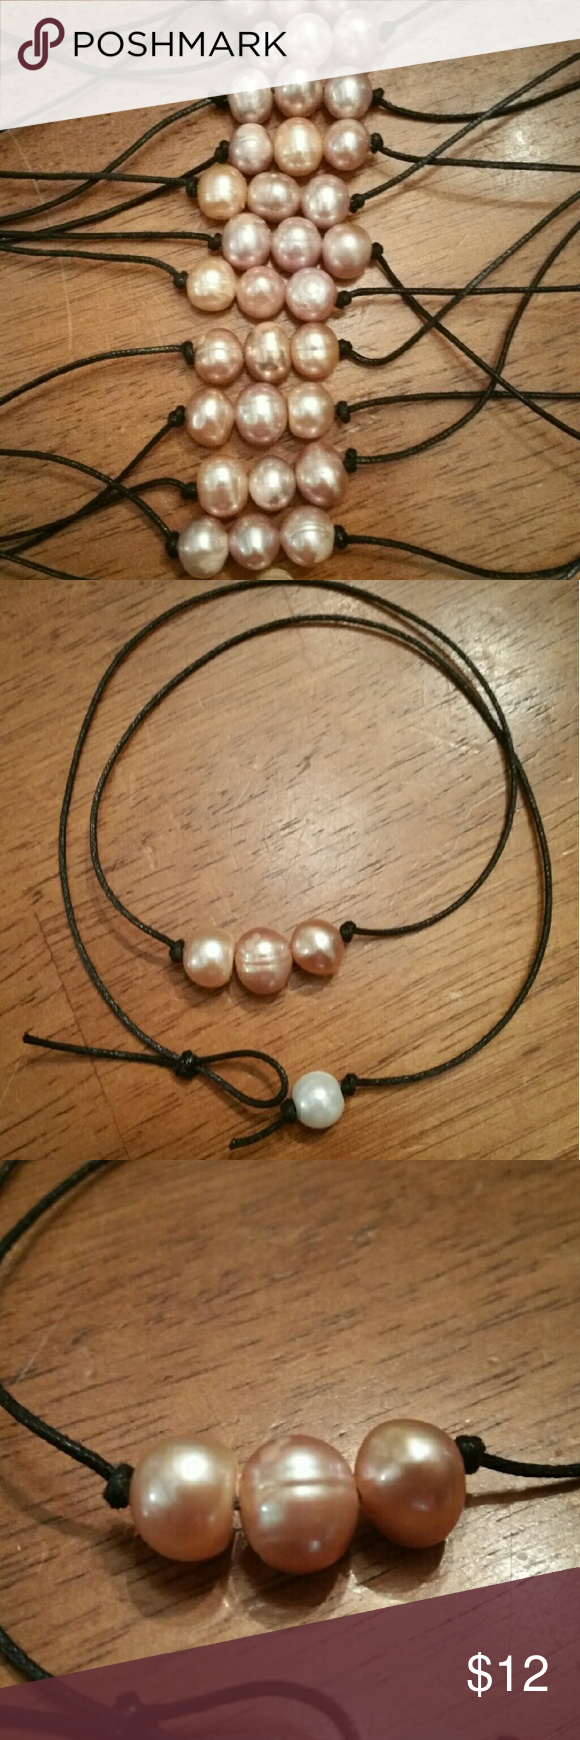 "18"" Triple wish FRESHWATER PEARL CHOKER NECKLACE Longer 18"" length  NATURAL freshwater pearls. They are not painted or colored. So their coloring us not even in some areas, that is just their natural color!   THE BEAD ON THE CLOSURE IS GLASS PEARL. LARIAT STYLE SLIPKNOT CLOSURE   PRICE IS FOR ONE.  $12 EACH , discount for more then 1.  PLEASE ASK QUESTIONS BEFORE BUYING  CHECK OUT MY OTHER ADS FOR OTHER HANDMADE ITEMS  BUNDLE & SAVE! handmade  Jewelry Necklaces"